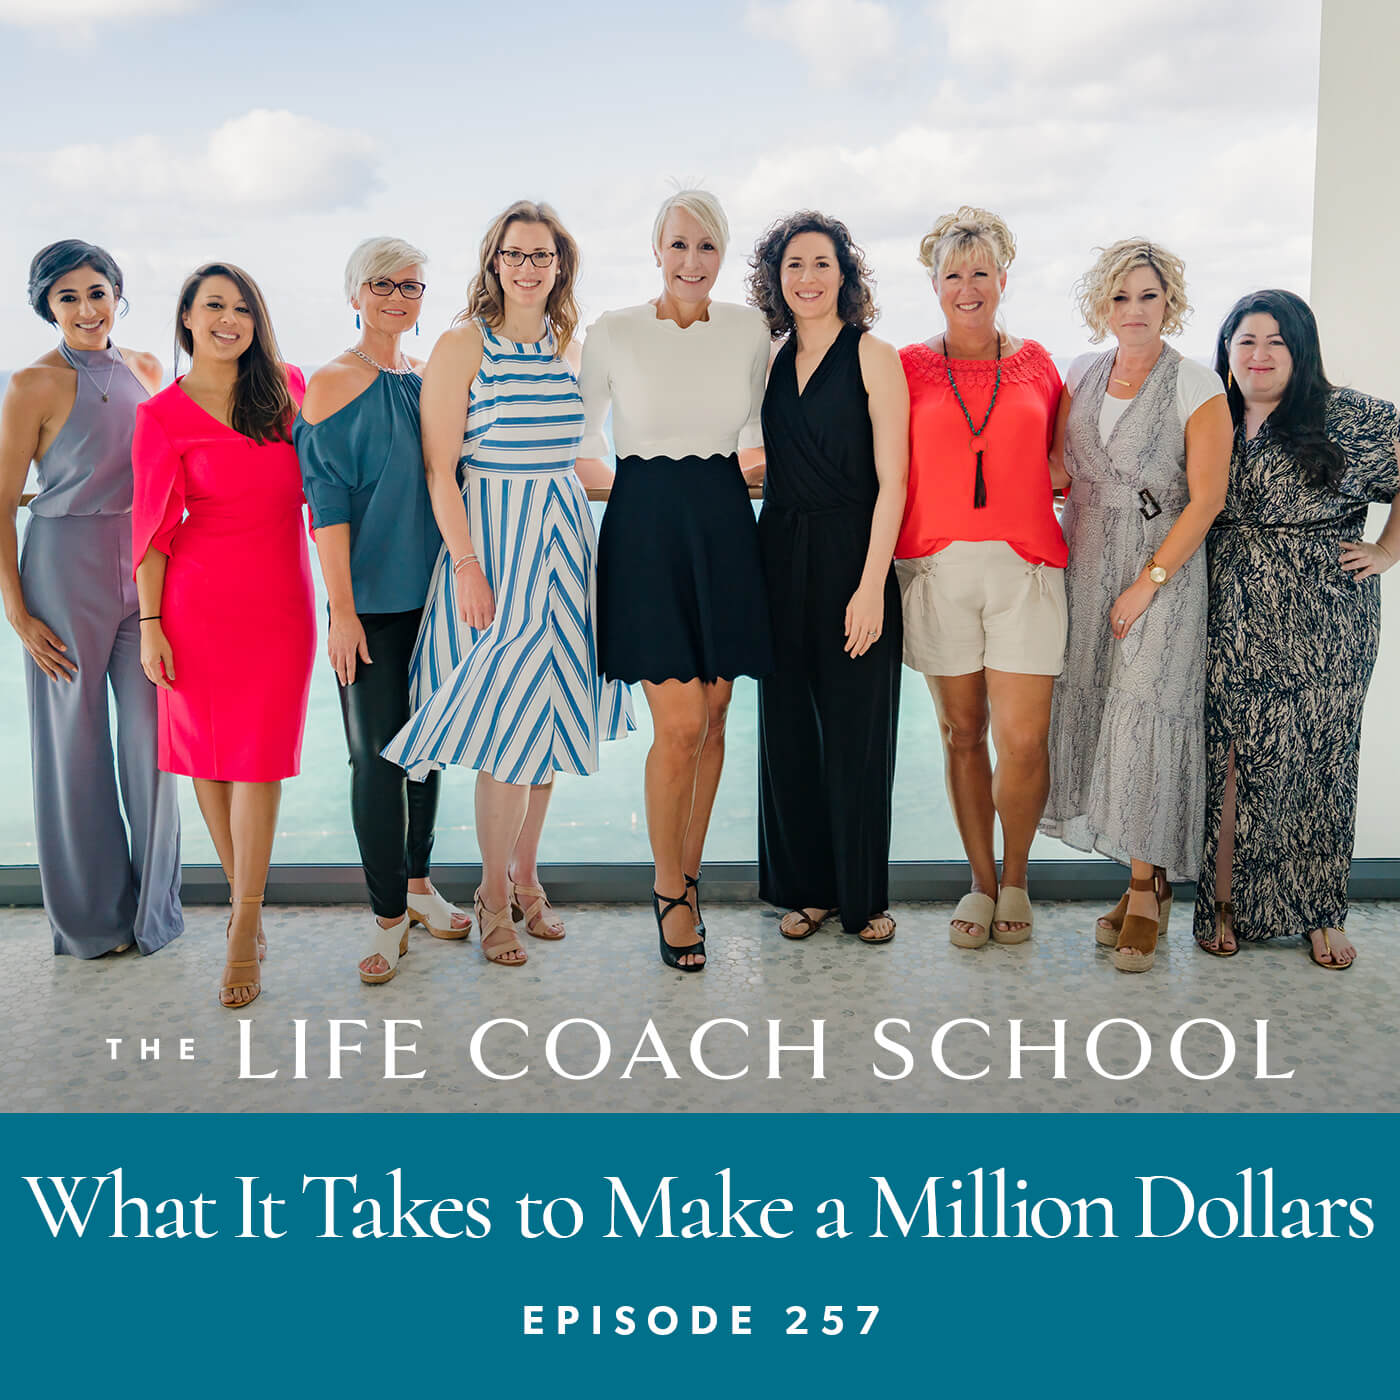 The Life Coach School Podcast with Brooke Castillo | Episode 257 | What it Takes to Make a Million Dollars